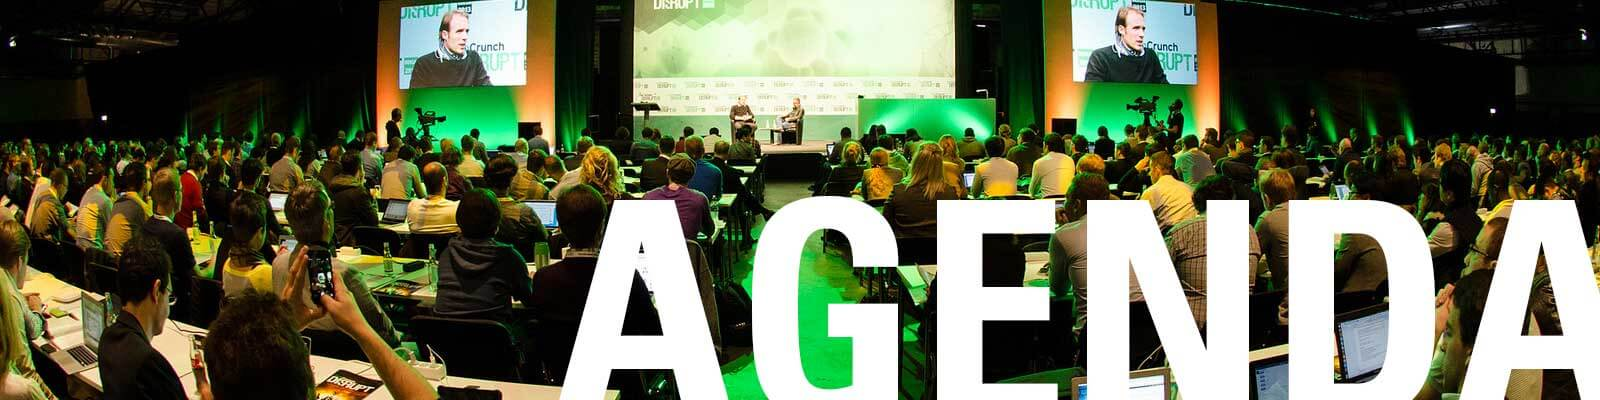 """techcrunch-disrupt-agenda Everything You Need to Know as an Entrepreneur, Startup, or Investors from """"Disrupt Berlin 2017"""" - techcrunch disrupt agenda - Everything You Need to Know as an Entrepreneur, Startup, or Investors from """"Disrupt Berlin 2017"""""""